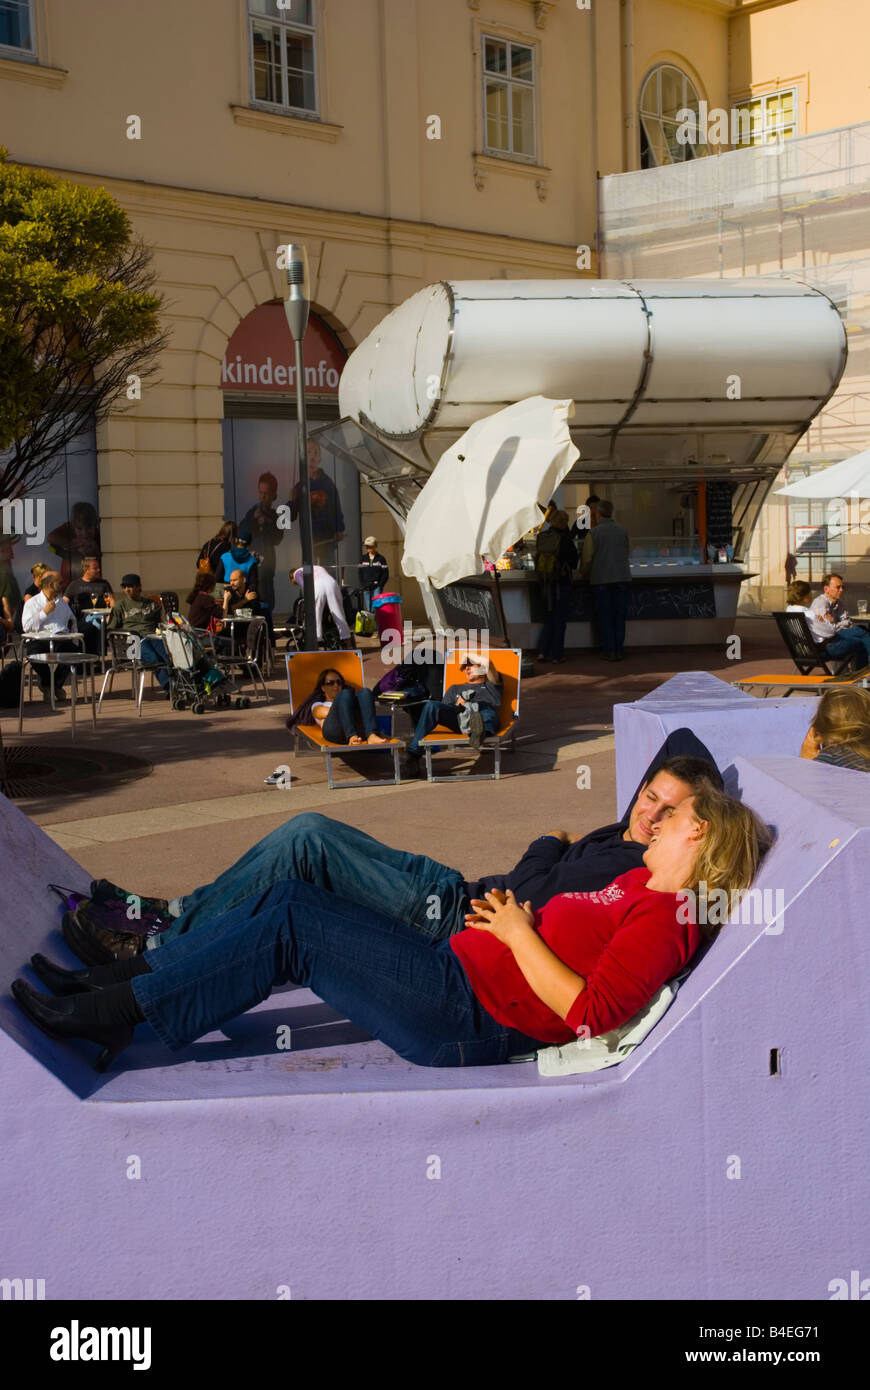 People relaxing in Museums Quartier district in central Vienna Austria Europe - Stock Image